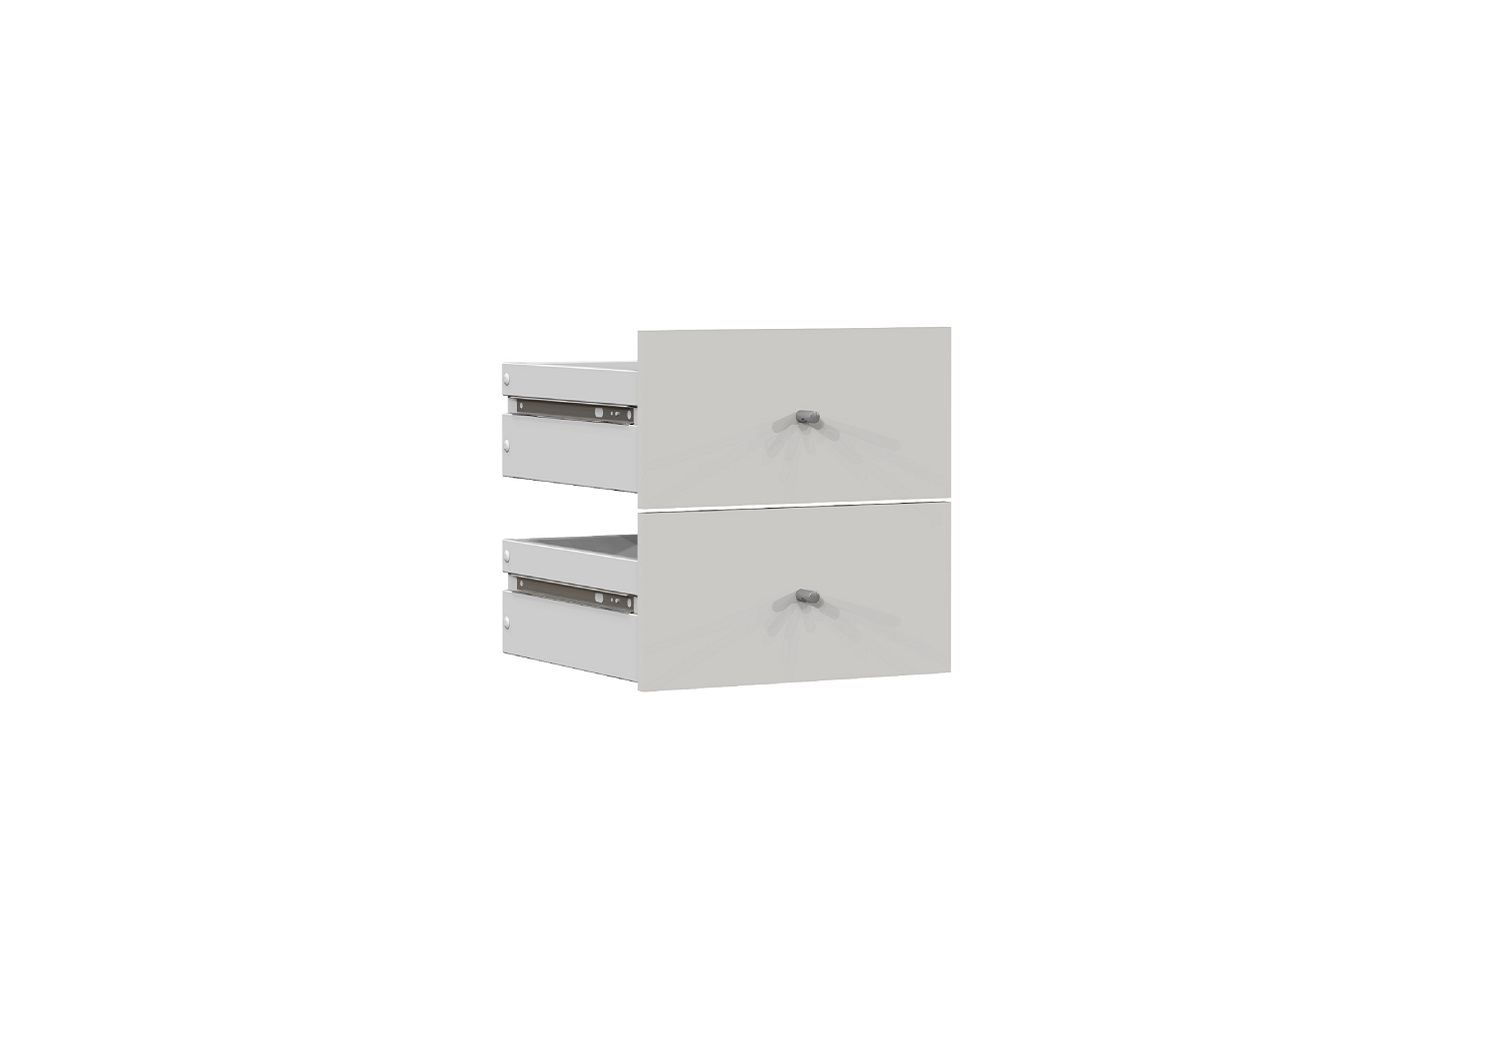 Bilrich Storage Furniture - Multi Kaz Accessory Set of 2 Drawers White